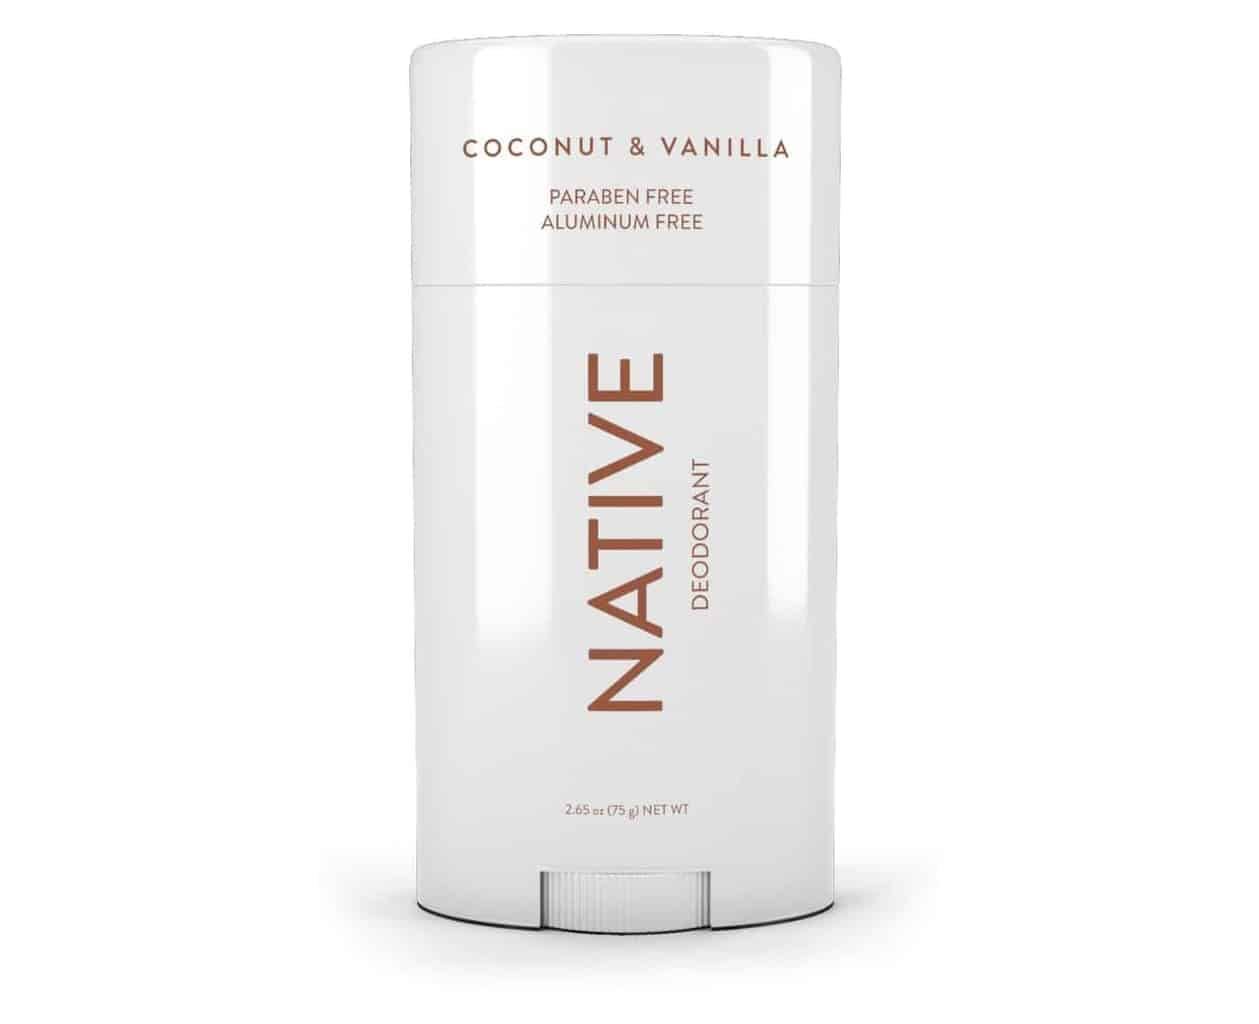 Native Coconut & Vanilla Deodorant – 2.65oz